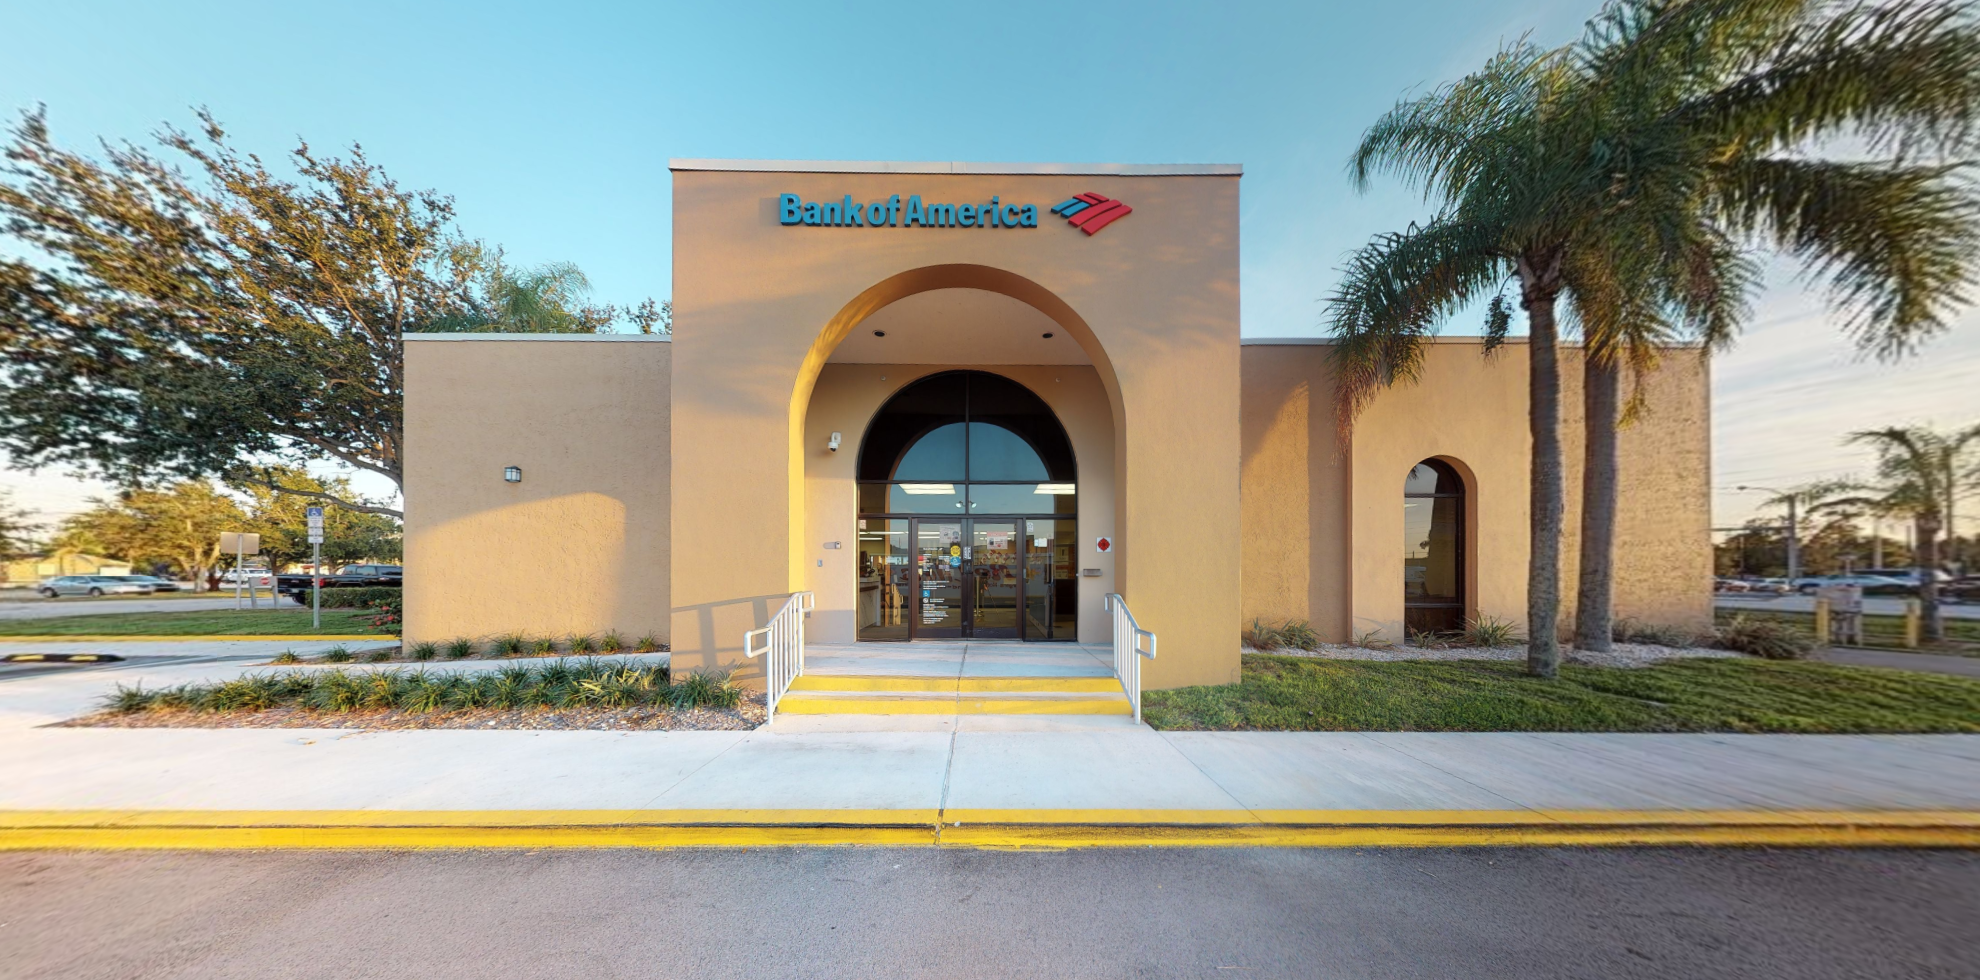 Bank of America financial center with drive-thru ATM | 19017 S Tamiami Trl, Fort Myers, FL 33908